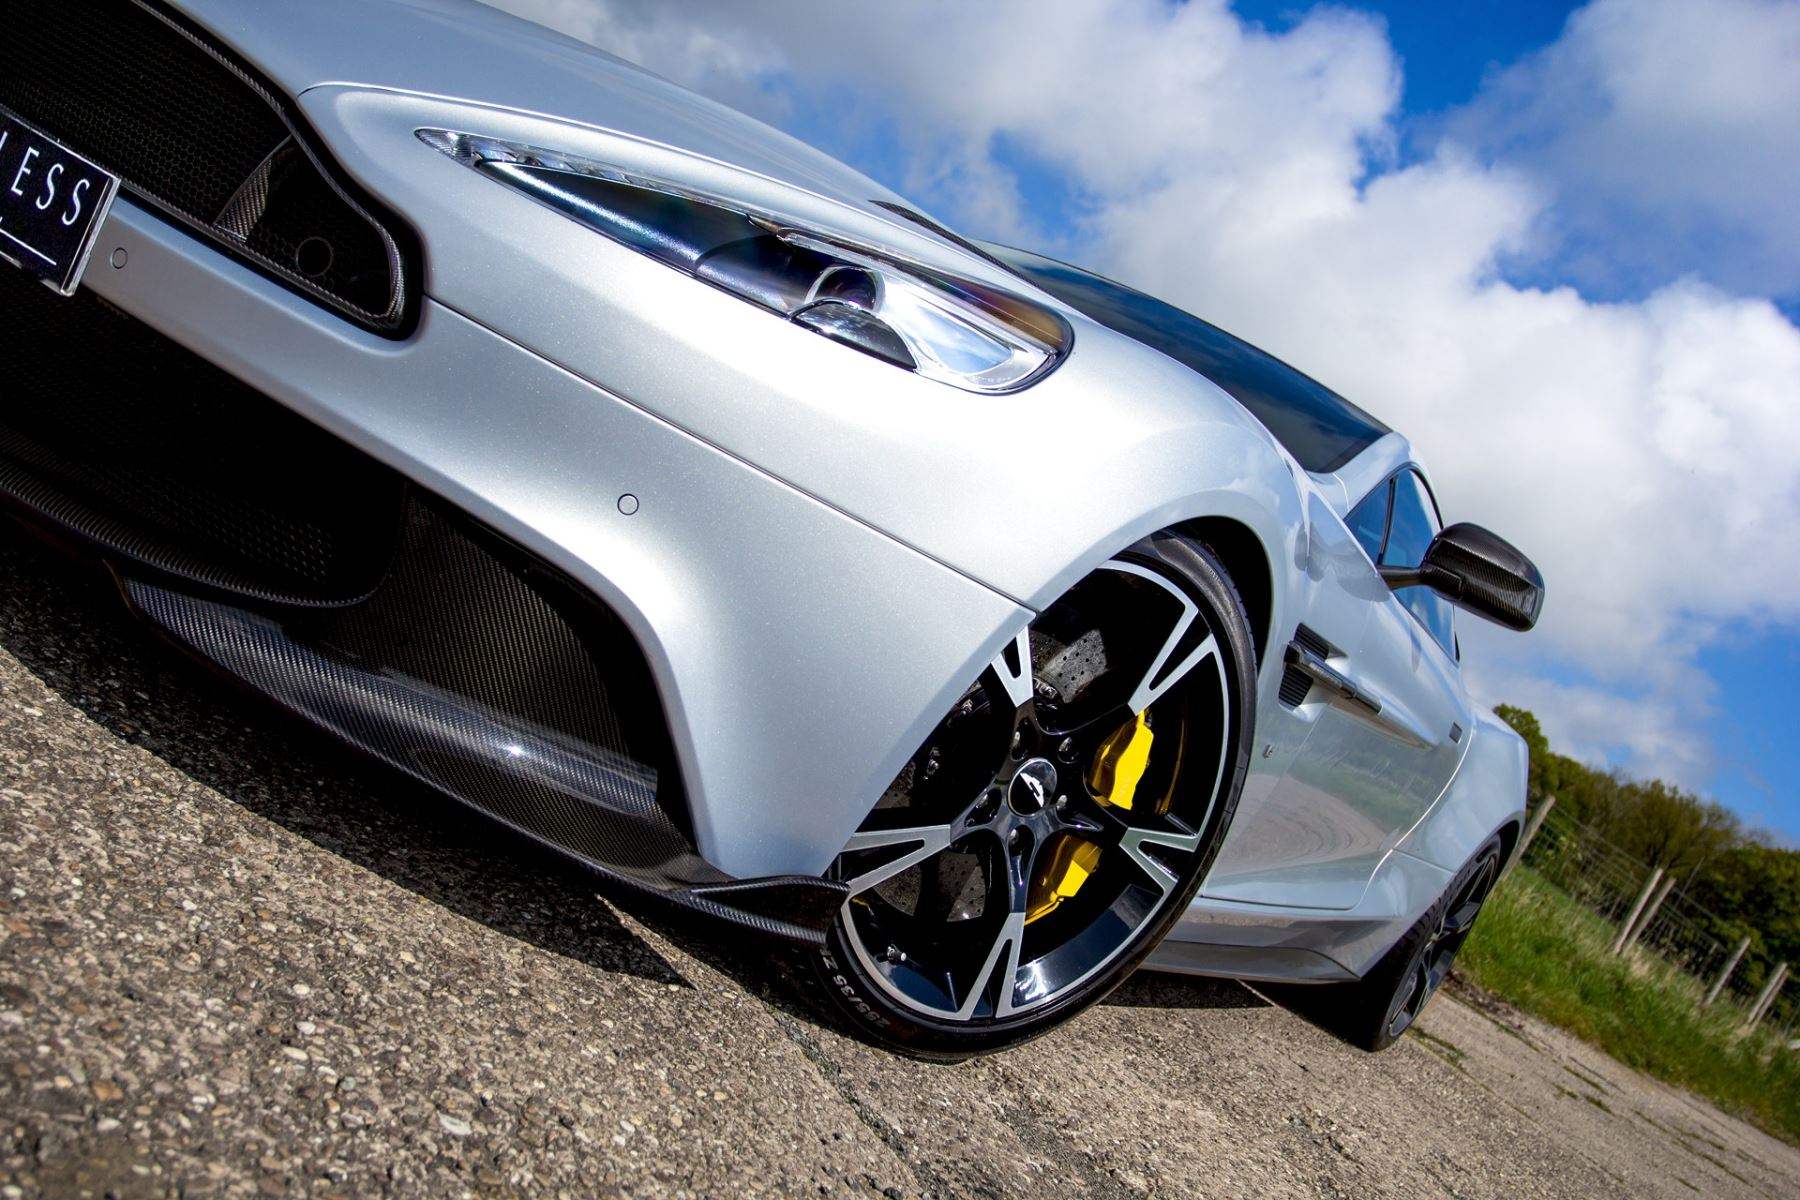 Aston Martin Vanquish V12 [595] S 2+2 2dr Touchtronic image 11